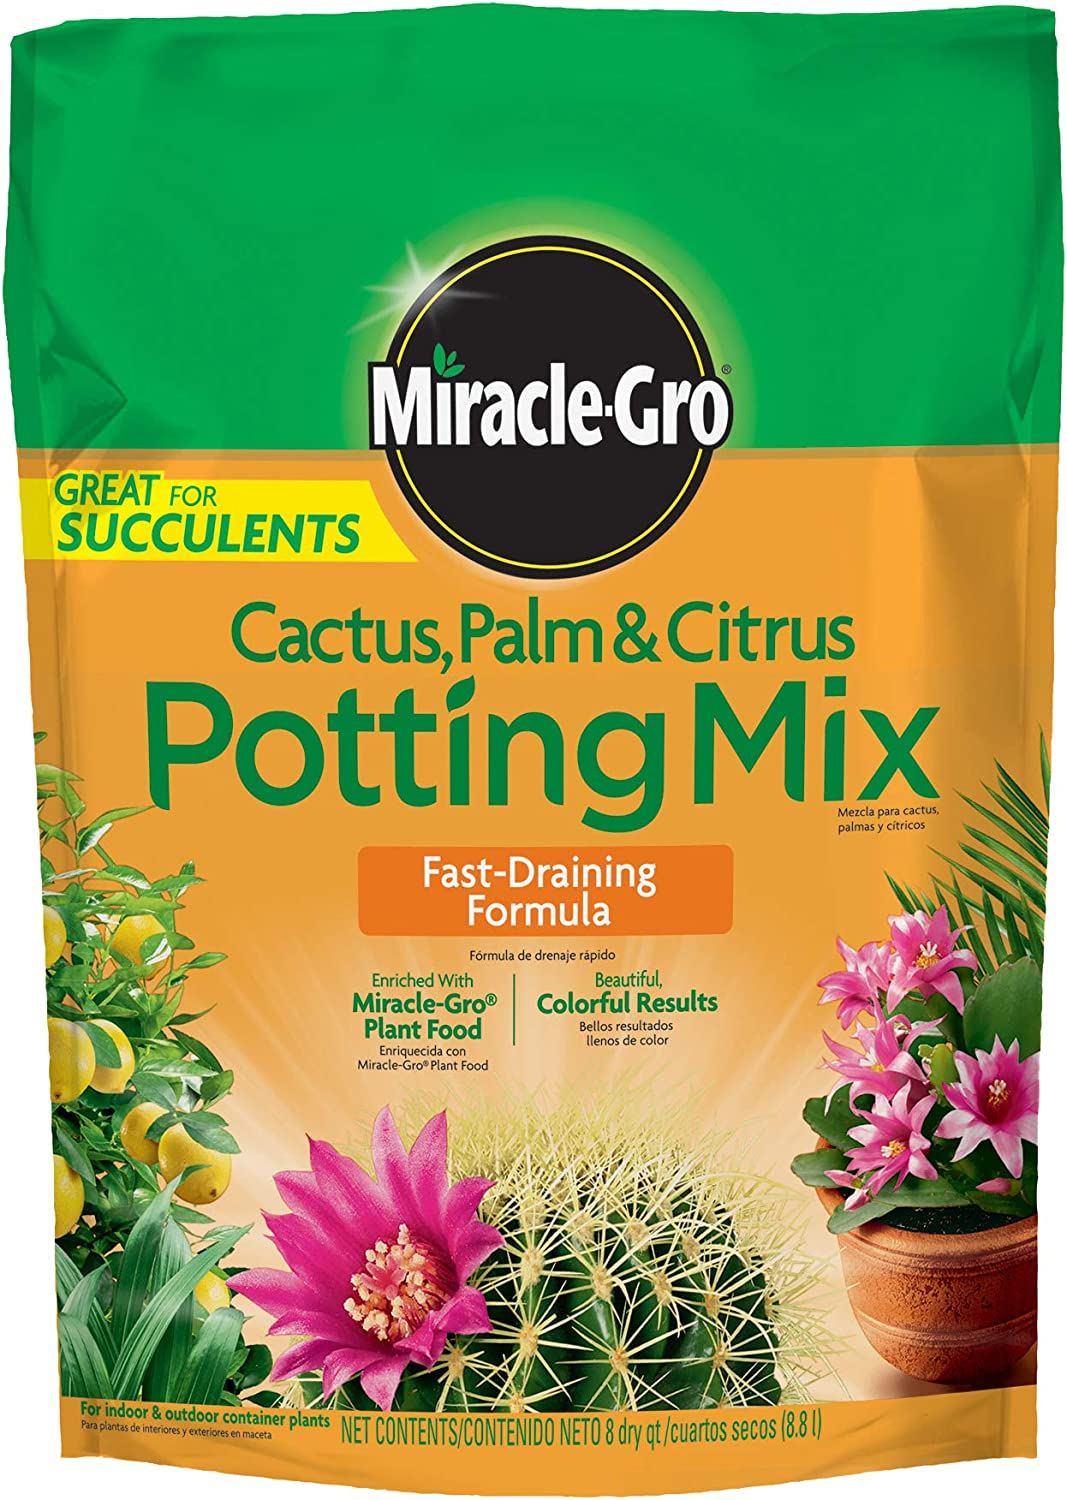 Miracle-Gro Cactus, Palm & Citrus Potting Mix